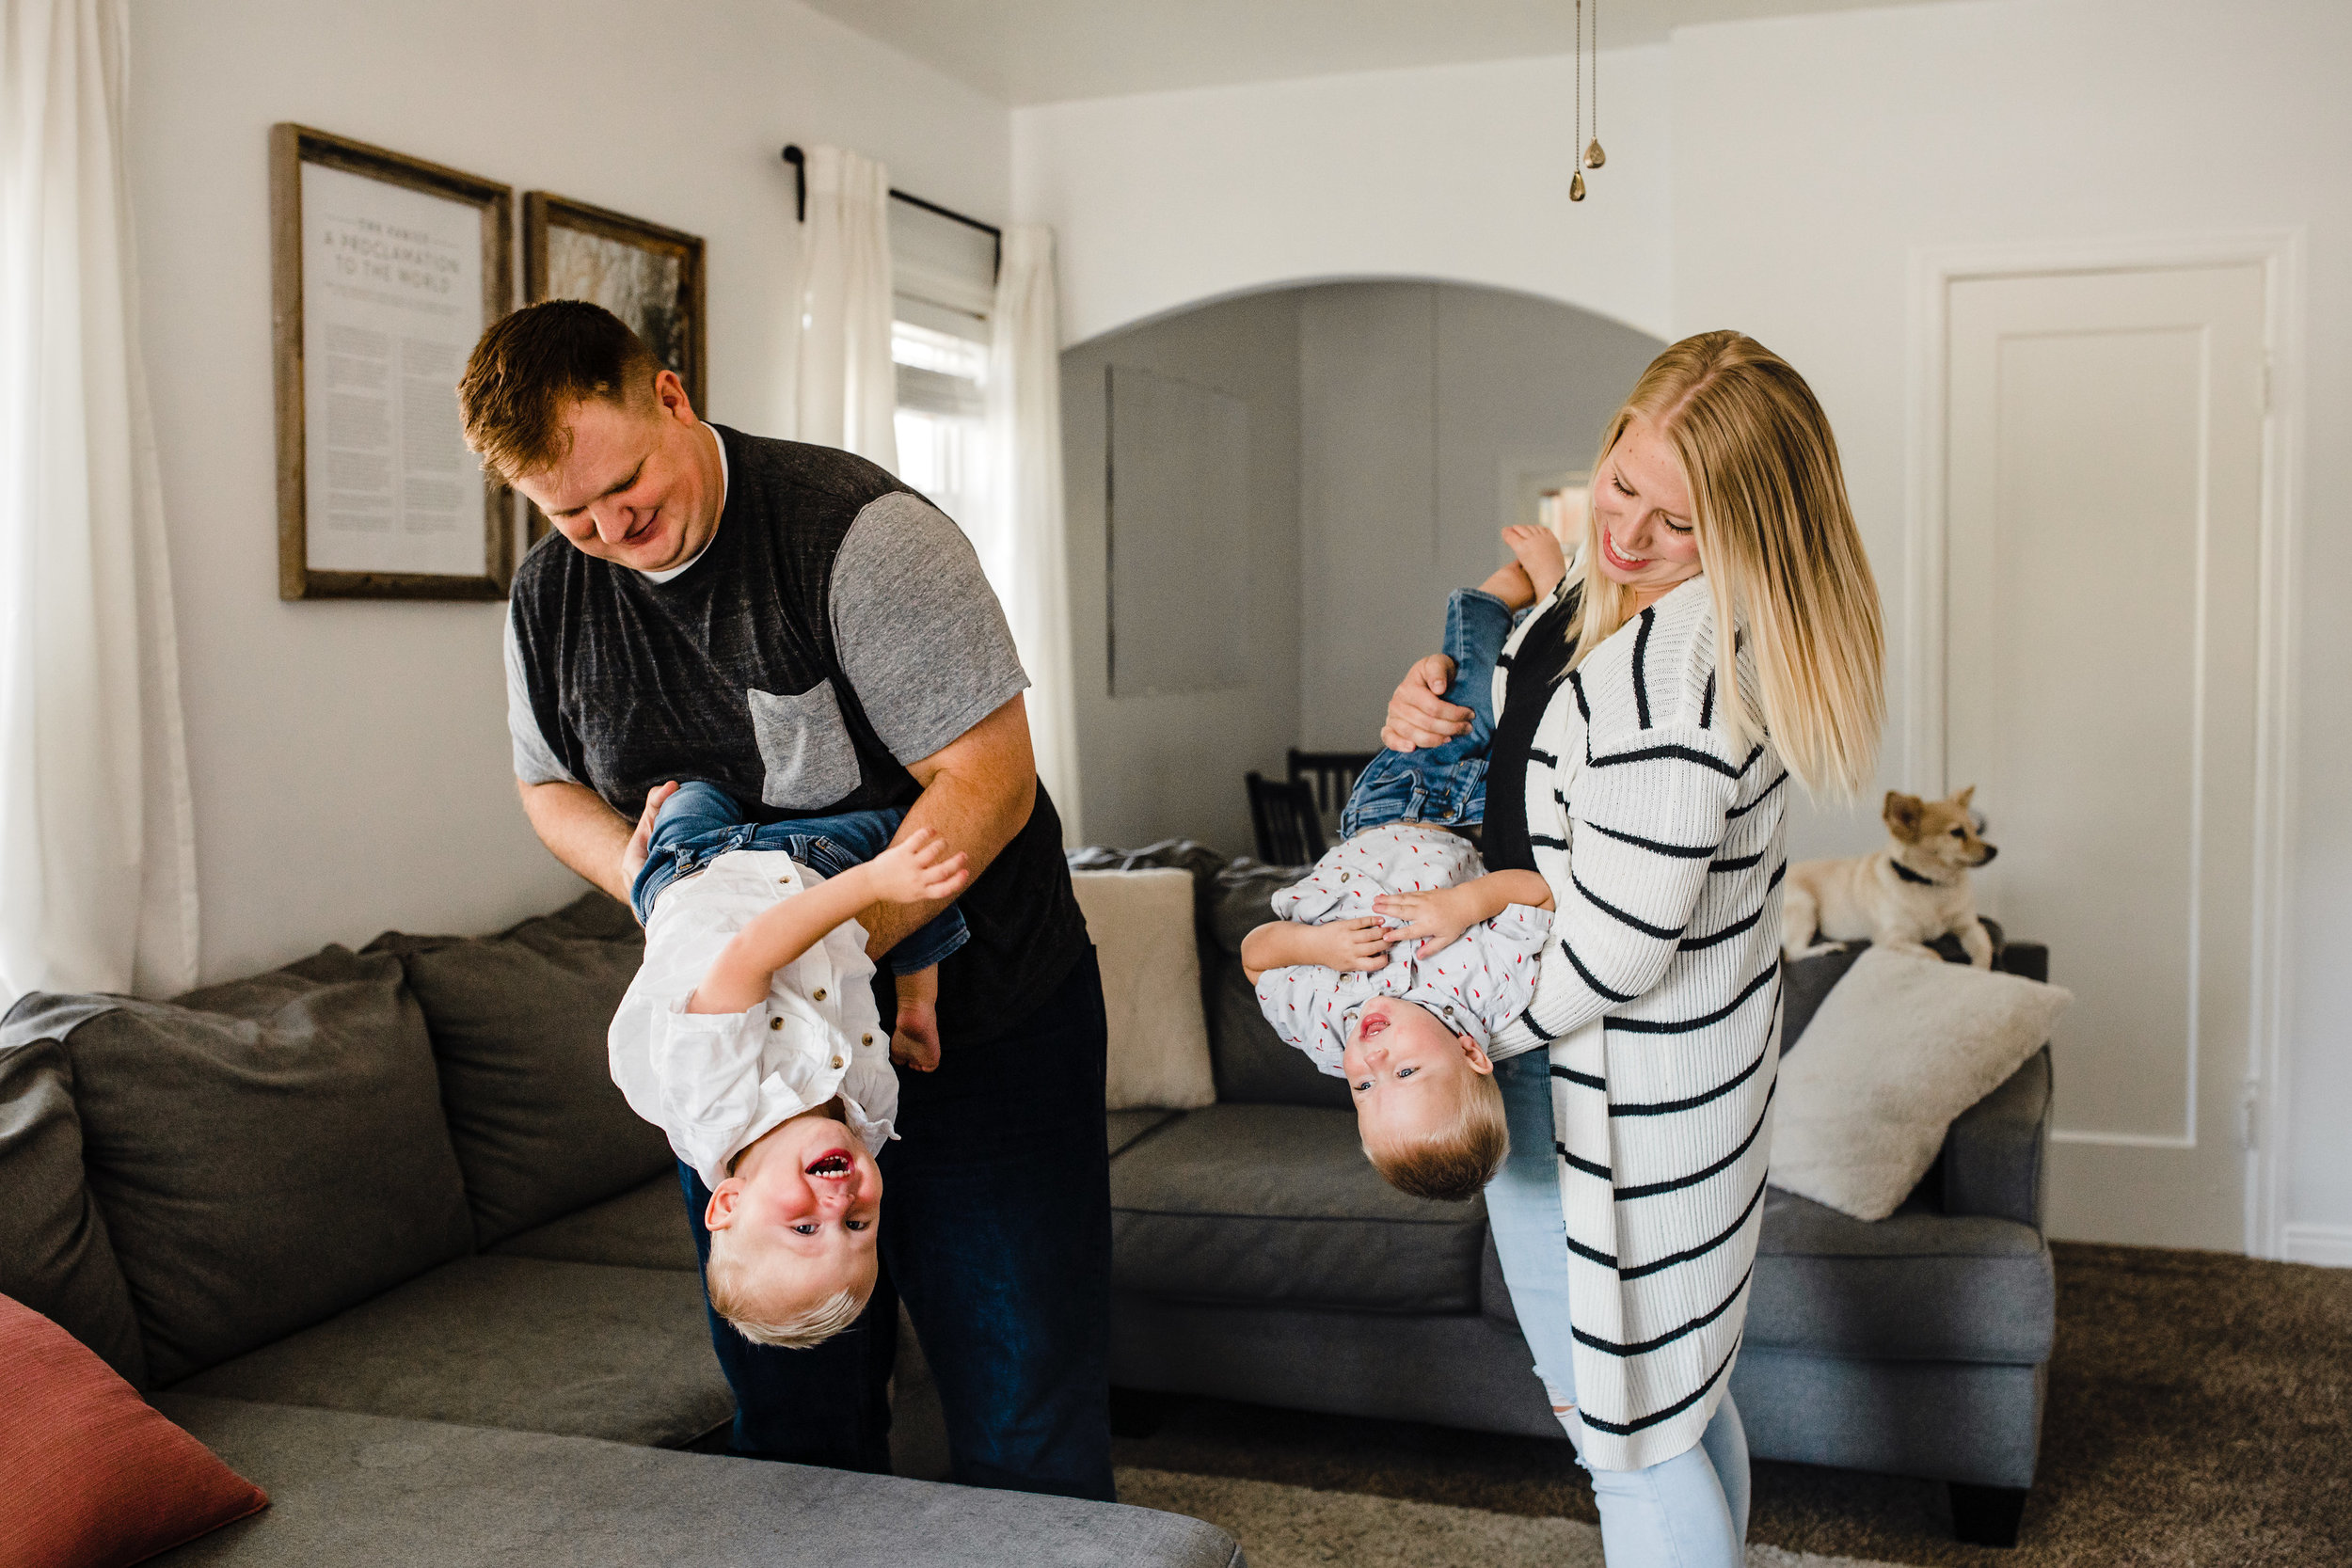 professional lifestyle photographer in logan utah living room twin boys toddlers playful upside down holding